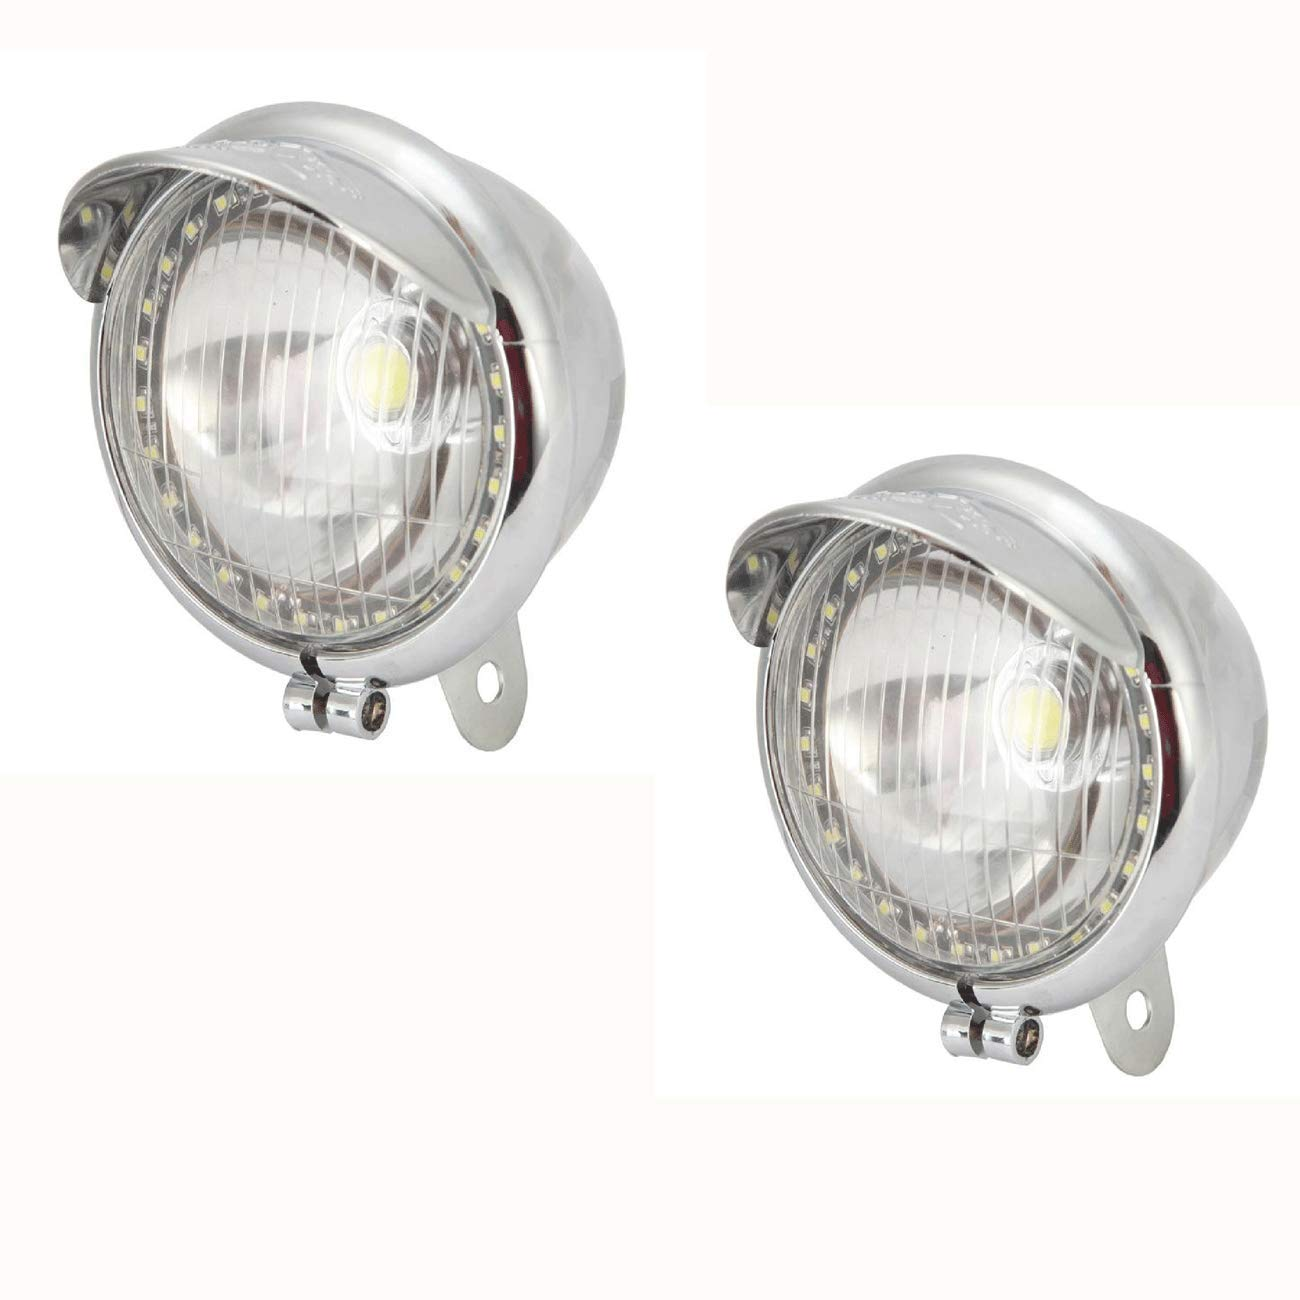 TOPAUP LED Spotlight Passing Light Fog Lamp Projector Angle Eye Motorcycle Cruisers Bobber Chopper Harley Davidson Chrome 1 Pair